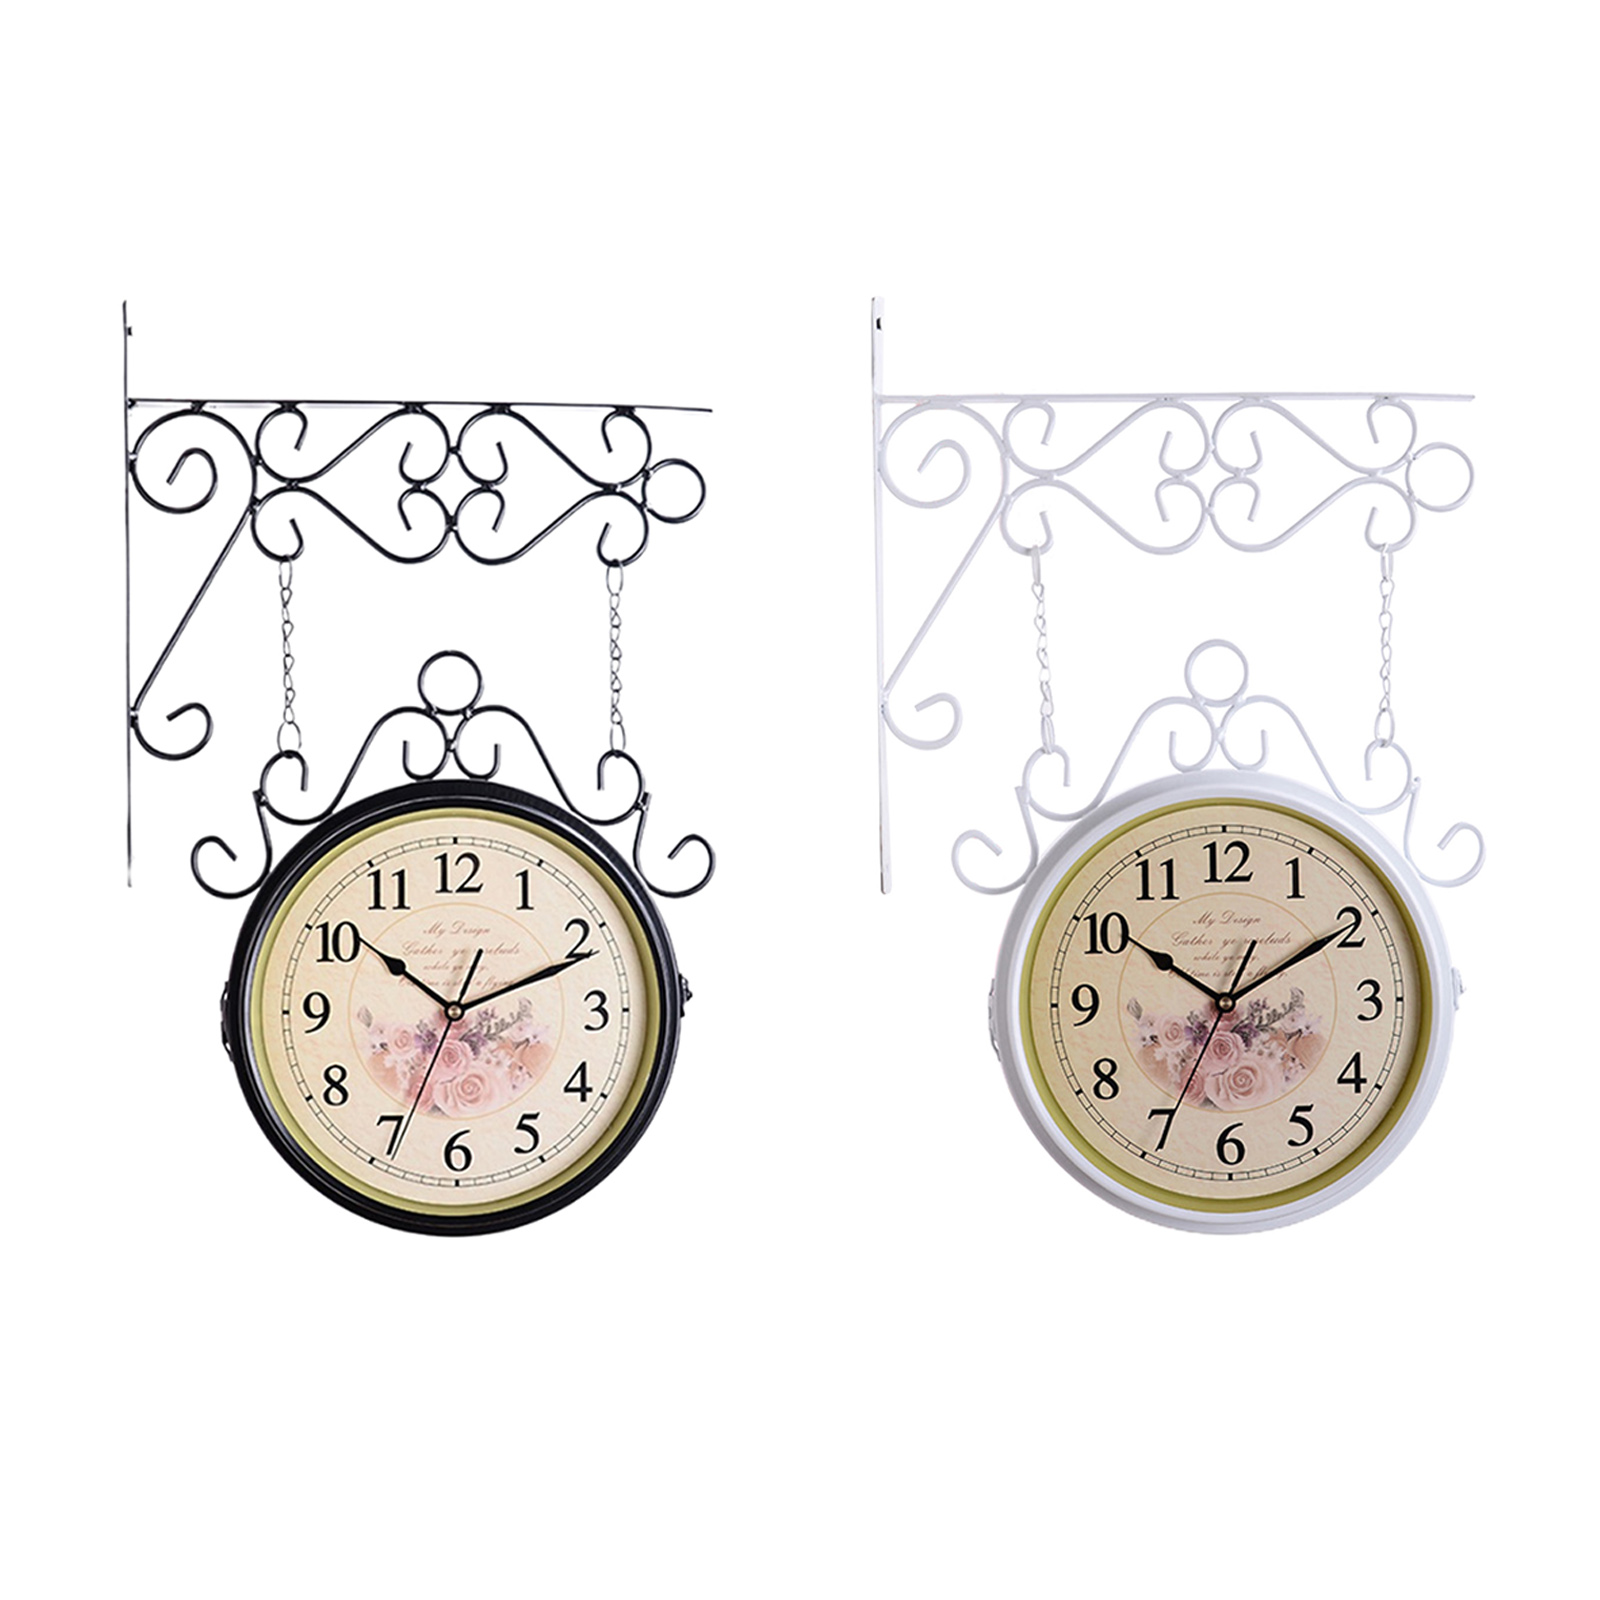 Vintage Style Double Sided Metal Wall Clock Station Silent Clock Wall Hanging Clock Metal Clock Home Living Room Office Decor